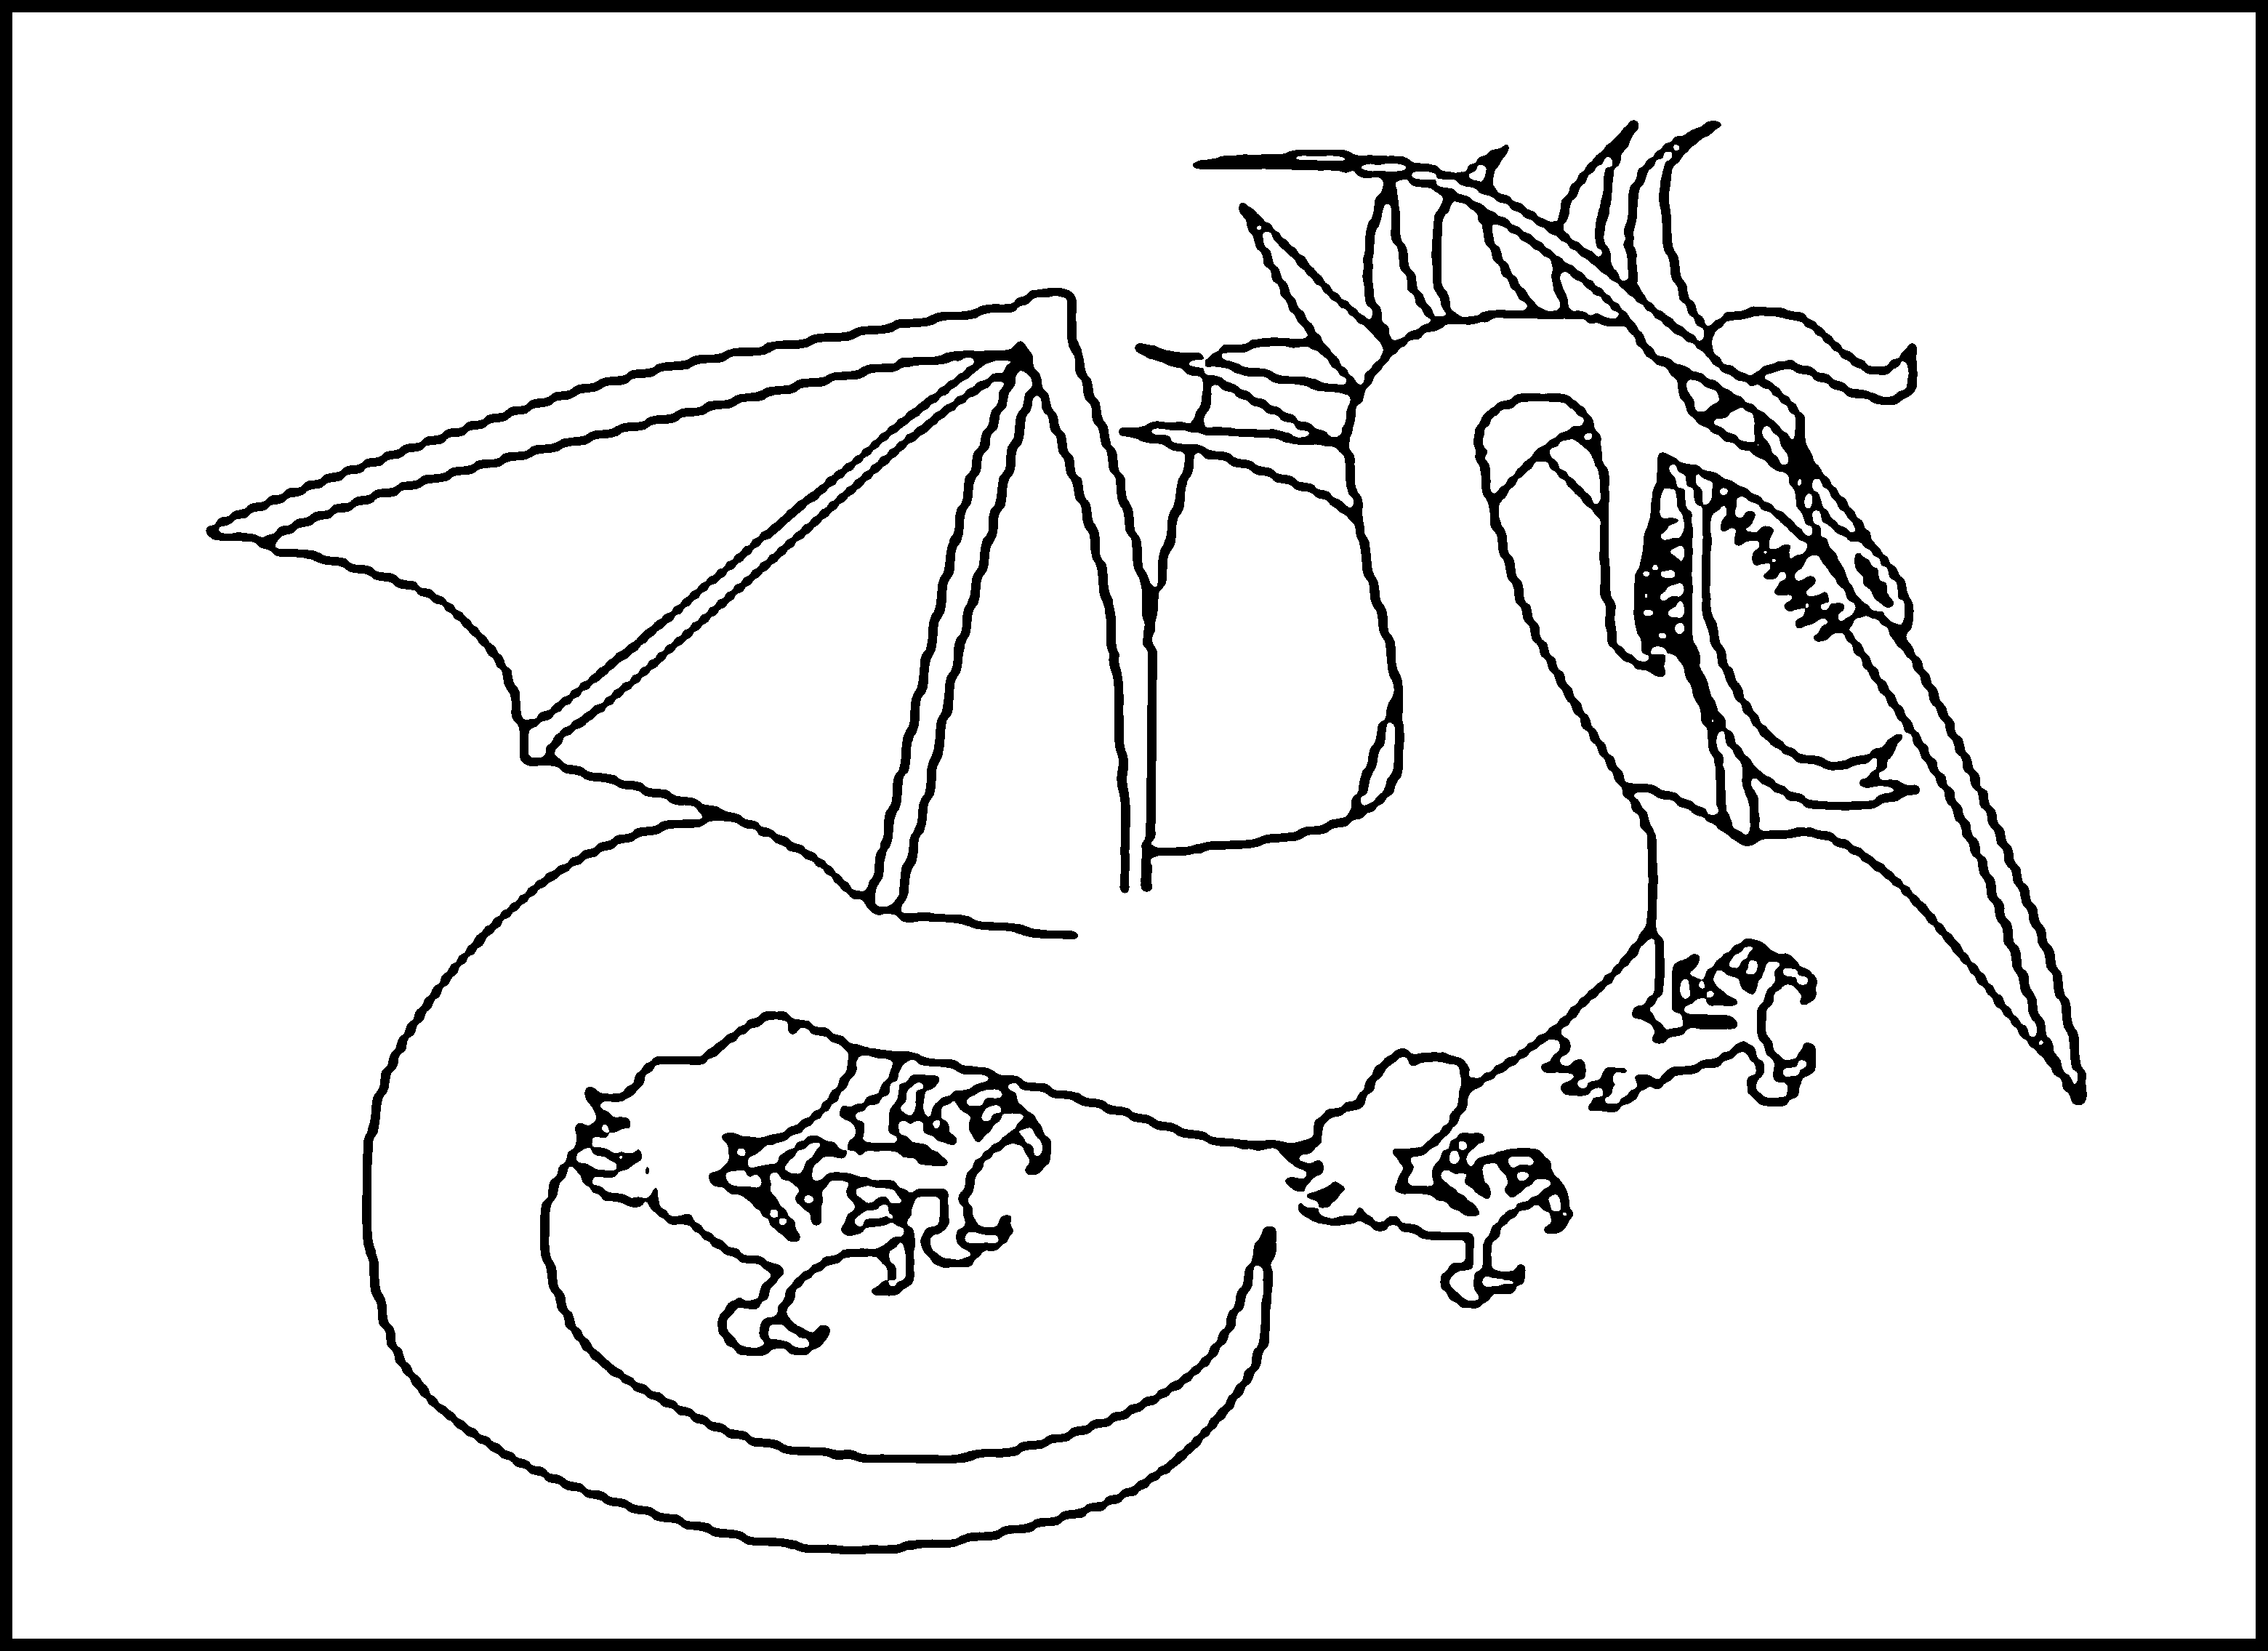 Free Printable Dragon Coloring Pages For Kids Print Coloring Pages For